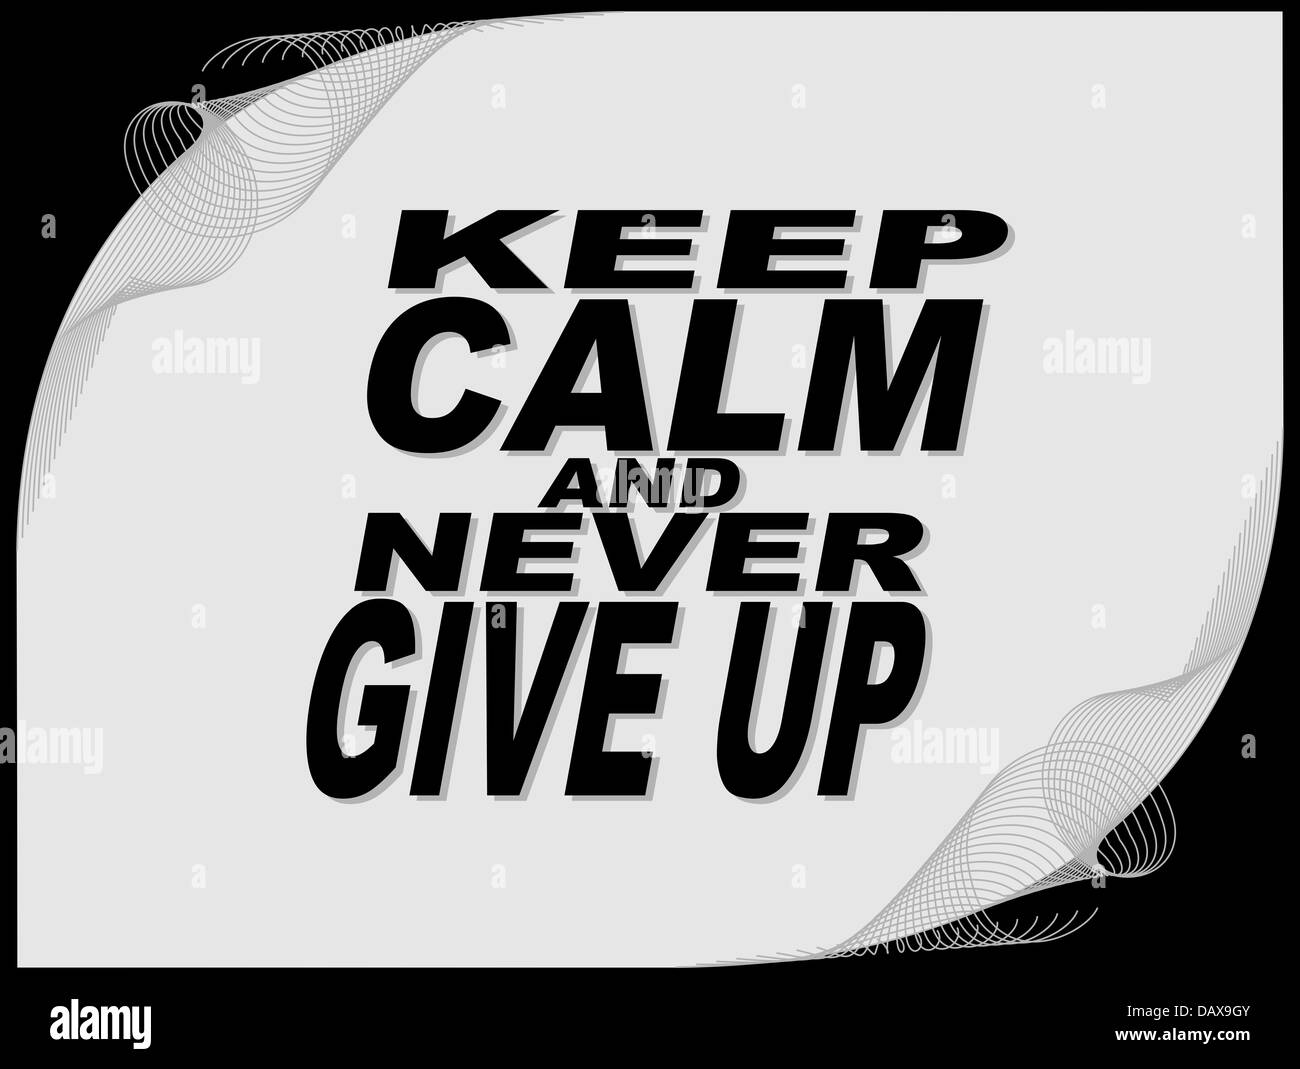 Poster Or Wallpaper With An Inspiring Phrase Keep Calm And Never Give Up